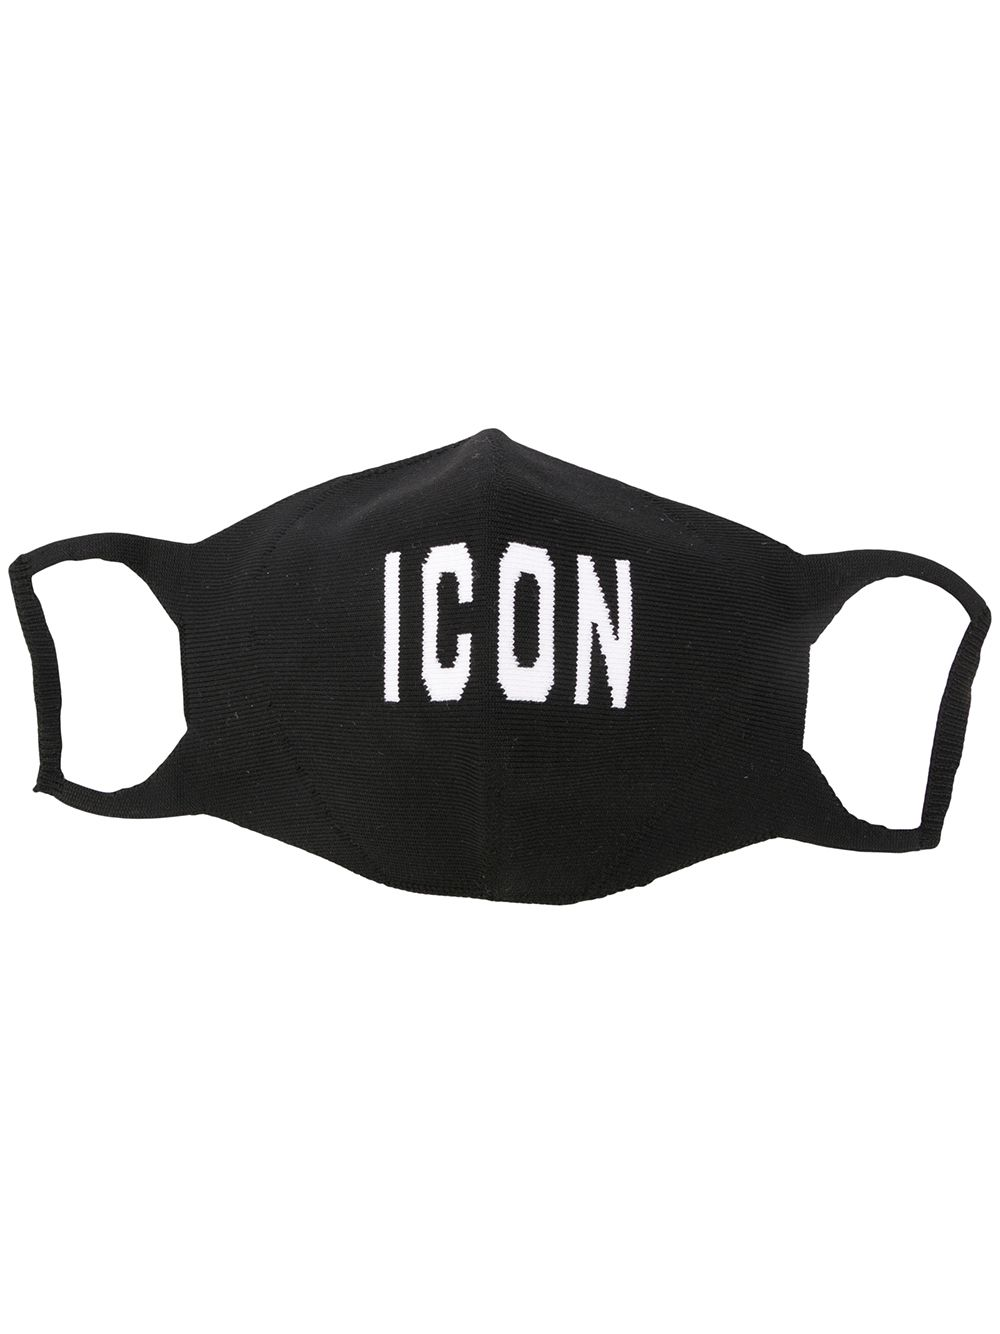 Dsquared2 logo-embellished icon face mask black/white